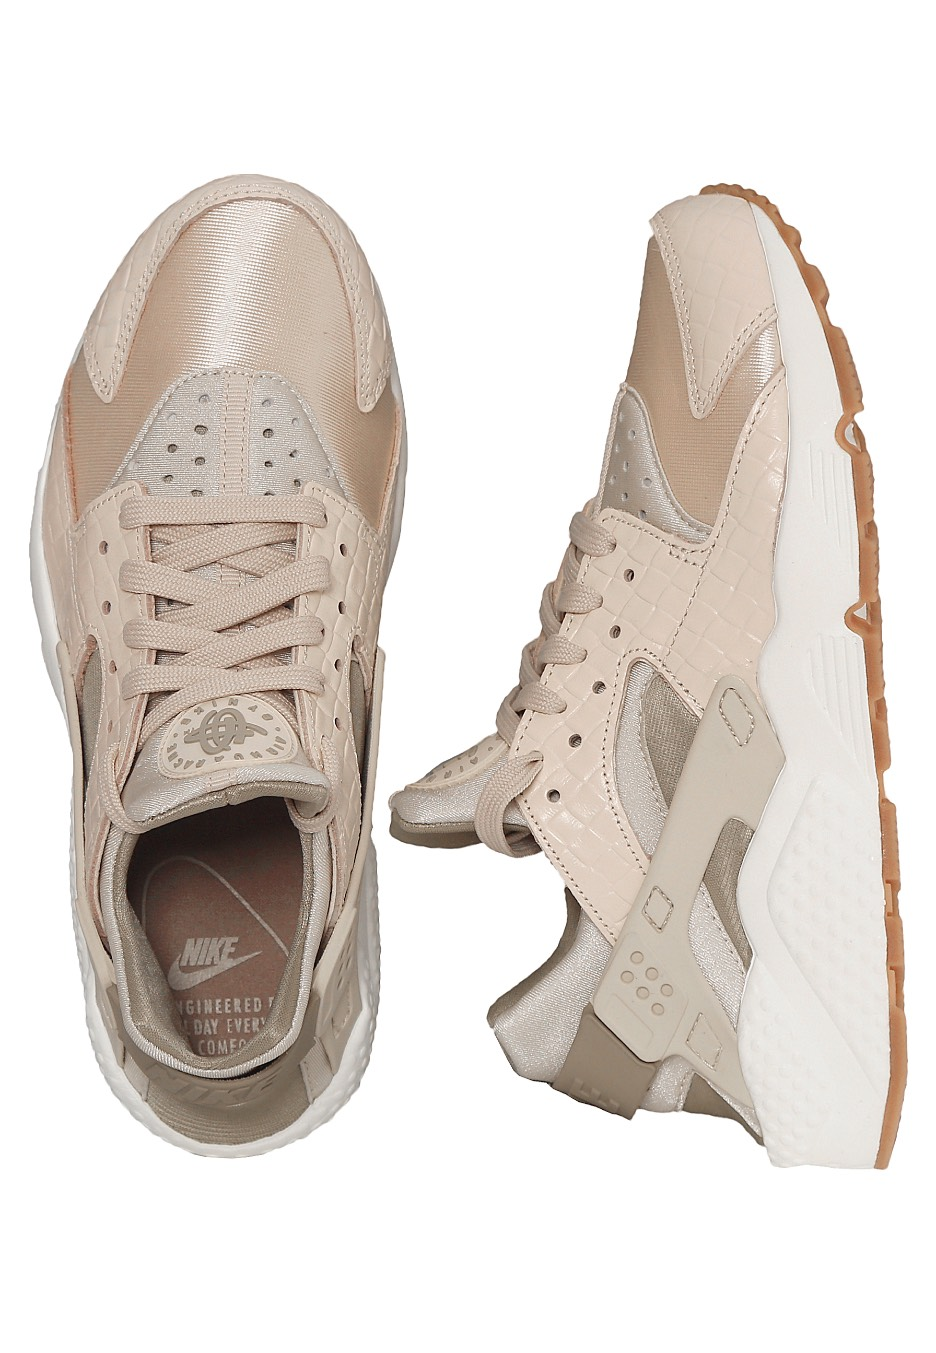 nike air huarache run premium oatmeal khaki sail gum med brown girl shoes. Black Bedroom Furniture Sets. Home Design Ideas